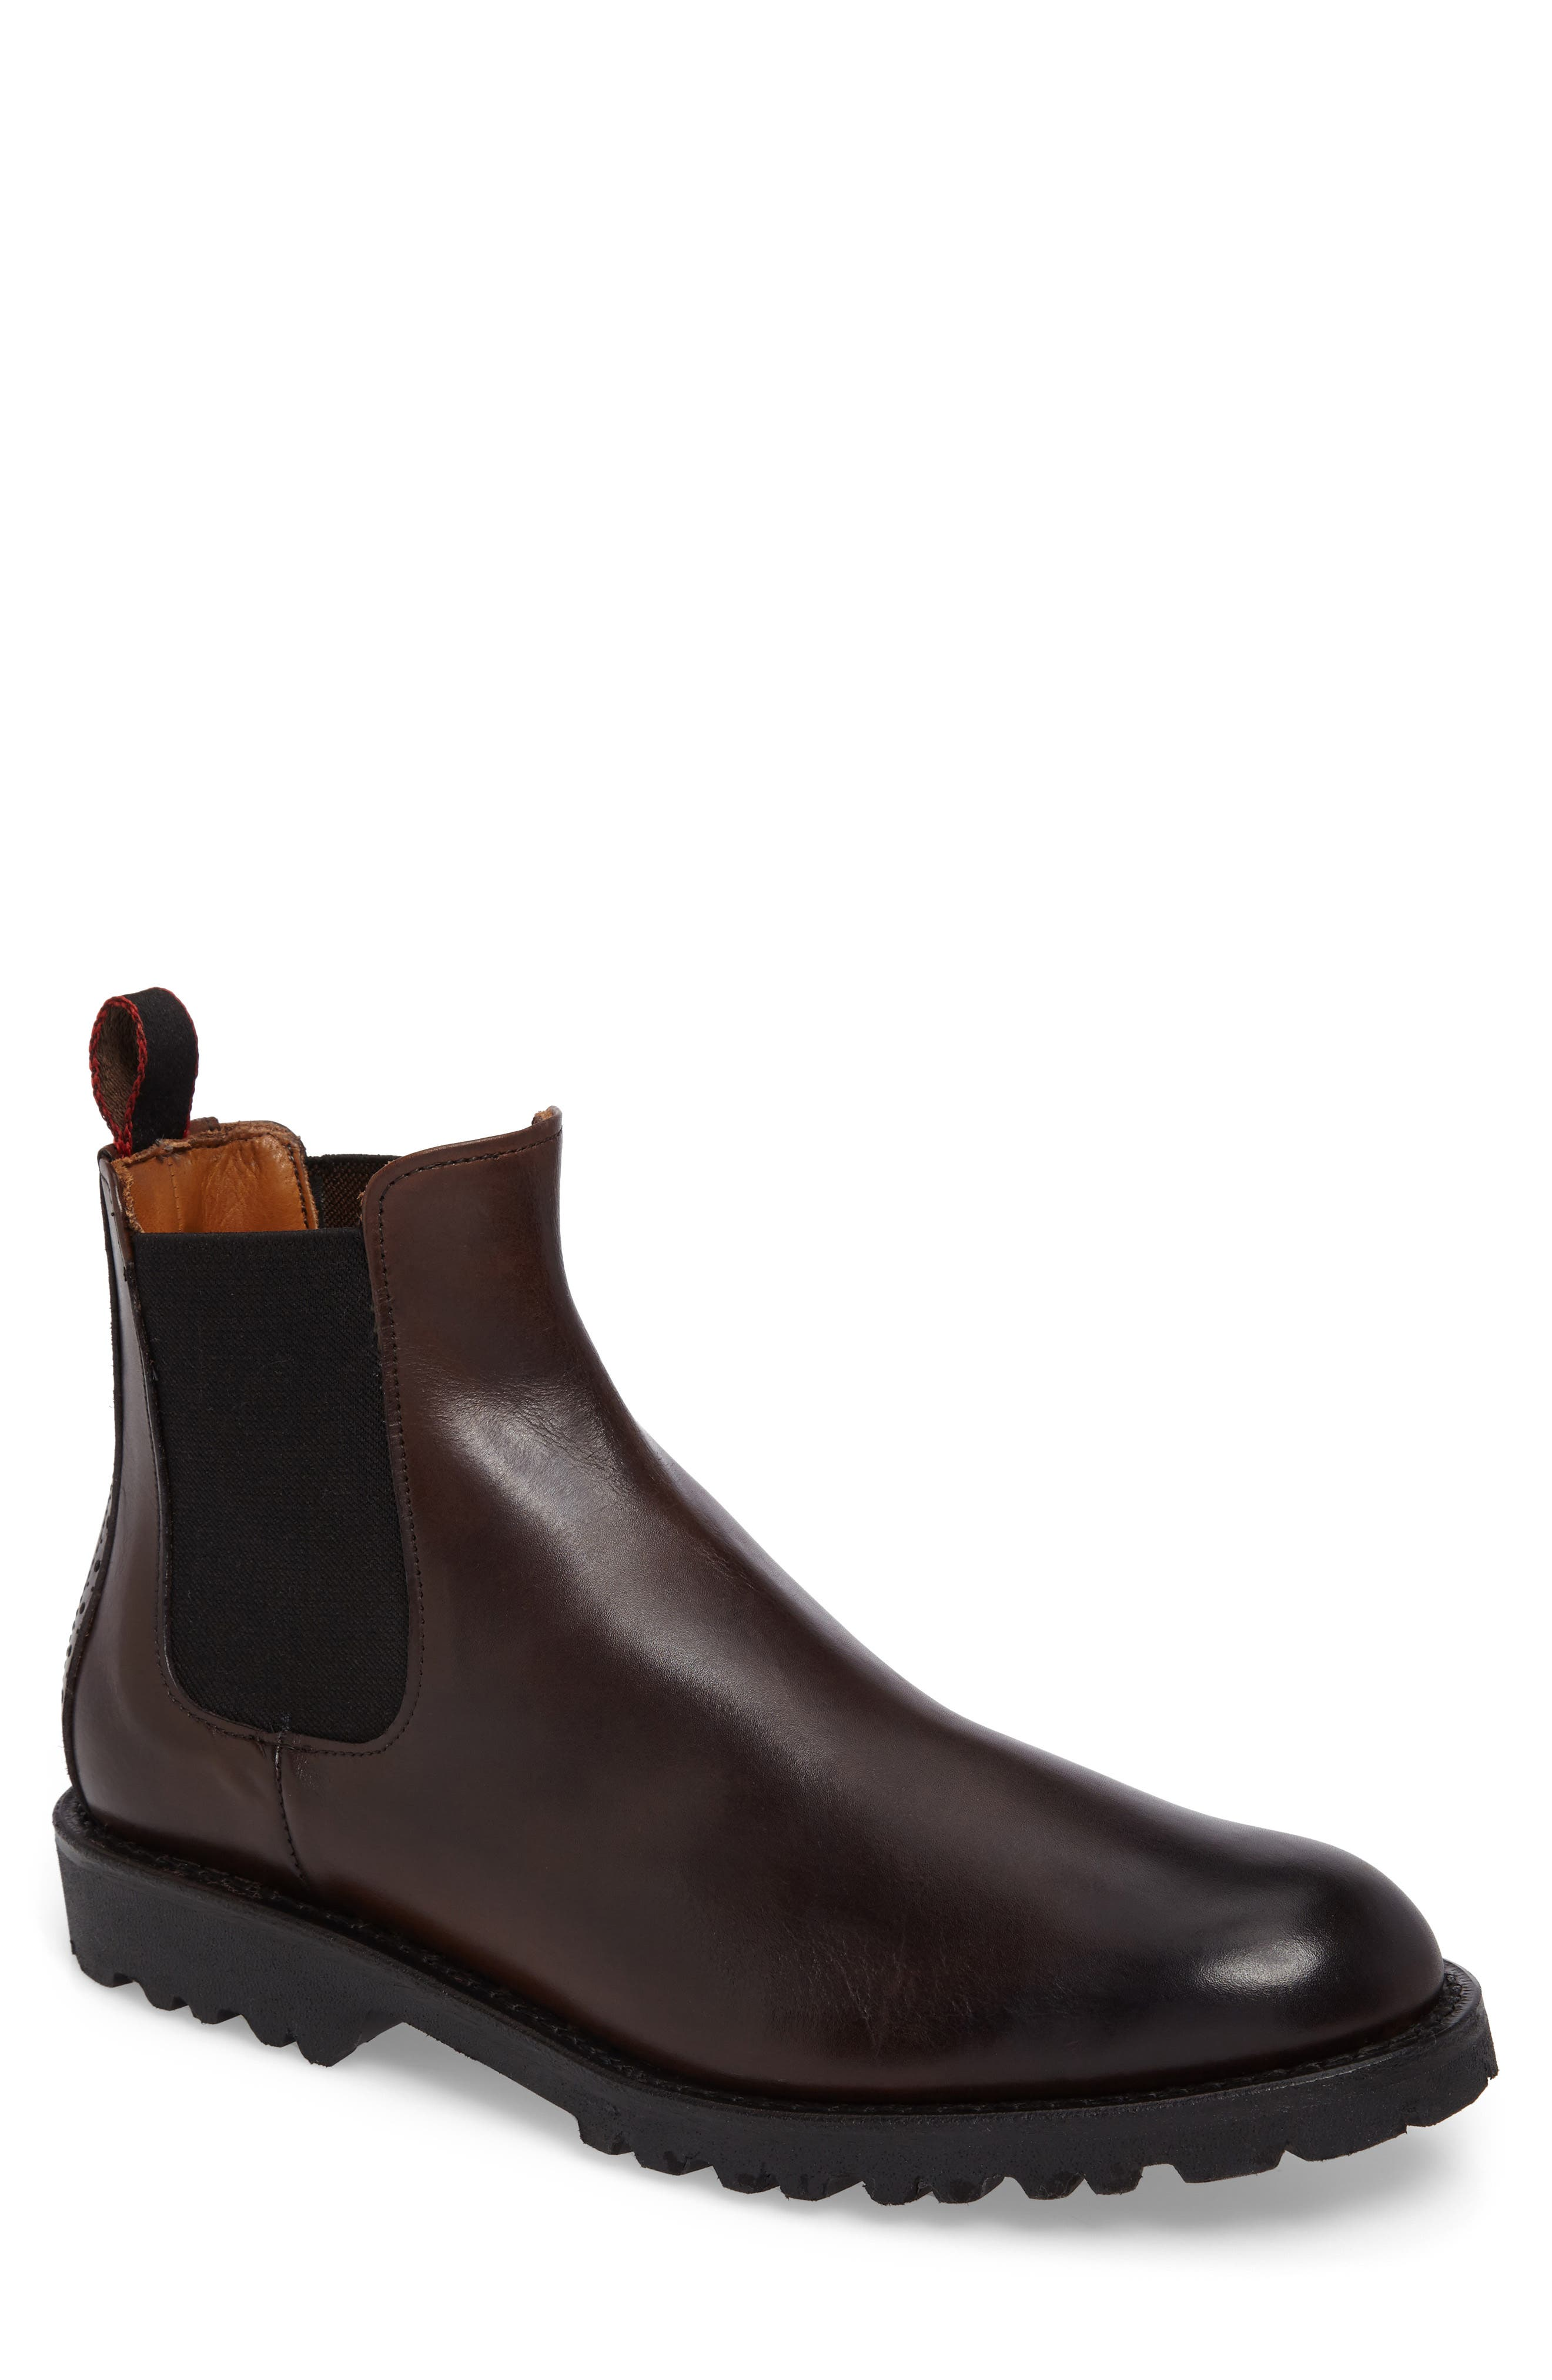 Tate Chelsea Boot,                         Main,                         color, Brown Leather